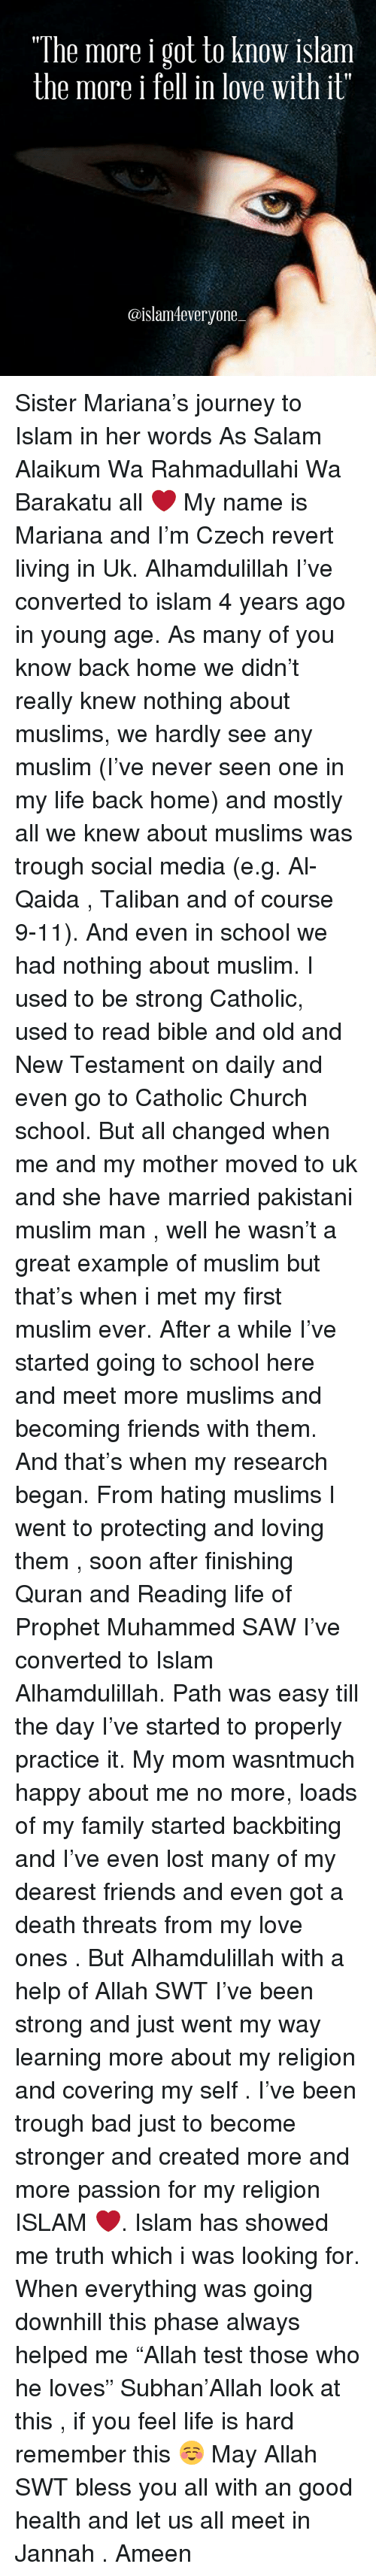 "Talibanned: ""The more i got to know islam  the more i  fell in love with it""  @islam 4everyone Sister Mariana's journey to Islam in her words As Salam Alaikum Wa Rahmadullahi Wa Barakatu all ❤️ My name is Mariana and I'm Czech revert living in Uk. Alhamdulillah I've converted to islam 4 years ago in young age. As many of you know back home we didn't really knew nothing about muslims, we hardly see any muslim (I've never seen one in my life back home) and mostly all we knew about muslims was trough social media (e.g. Al-Qaida , Taliban and of course 9-11). And even in school we had nothing about muslim. I used to be strong Catholic, used to read bible and old and New Testament on daily and even go to Catholic Church school. But all changed when me and my mother moved to uk and she have married pakistani muslim man , well he wasn't a great example of muslim but that's when i met my first muslim ever. After a while I've started going to school here and meet more muslims and becoming friends with them. And that's when my research began. From hating muslims I went to protecting and loving them , soon after finishing Quran and Reading life of Prophet Muhammed SAW I've converted to Islam Alhamdulillah. Path was easy till the day I've started to properly practice it. My mom wasntmuch happy about me no more, loads of my family started backbiting and I've even lost many of my dearest friends and even got a death threats from my love ones . But Alhamdulillah with a help of Allah SWT I've been strong and just went my way learning more about my religion and covering my self . I've been trough bad just to become stronger and created more and more passion for my religion ISLAM ❤️. Islam has showed me truth which i was looking for. When everything was going downhill this phase always helped me ""Allah test those who he loves"" Subhan'Allah look at this , if you feel life is hard remember this ☺️ May Allah SWT bless you all with an good health and let us all meet in Jannah . Ameen"